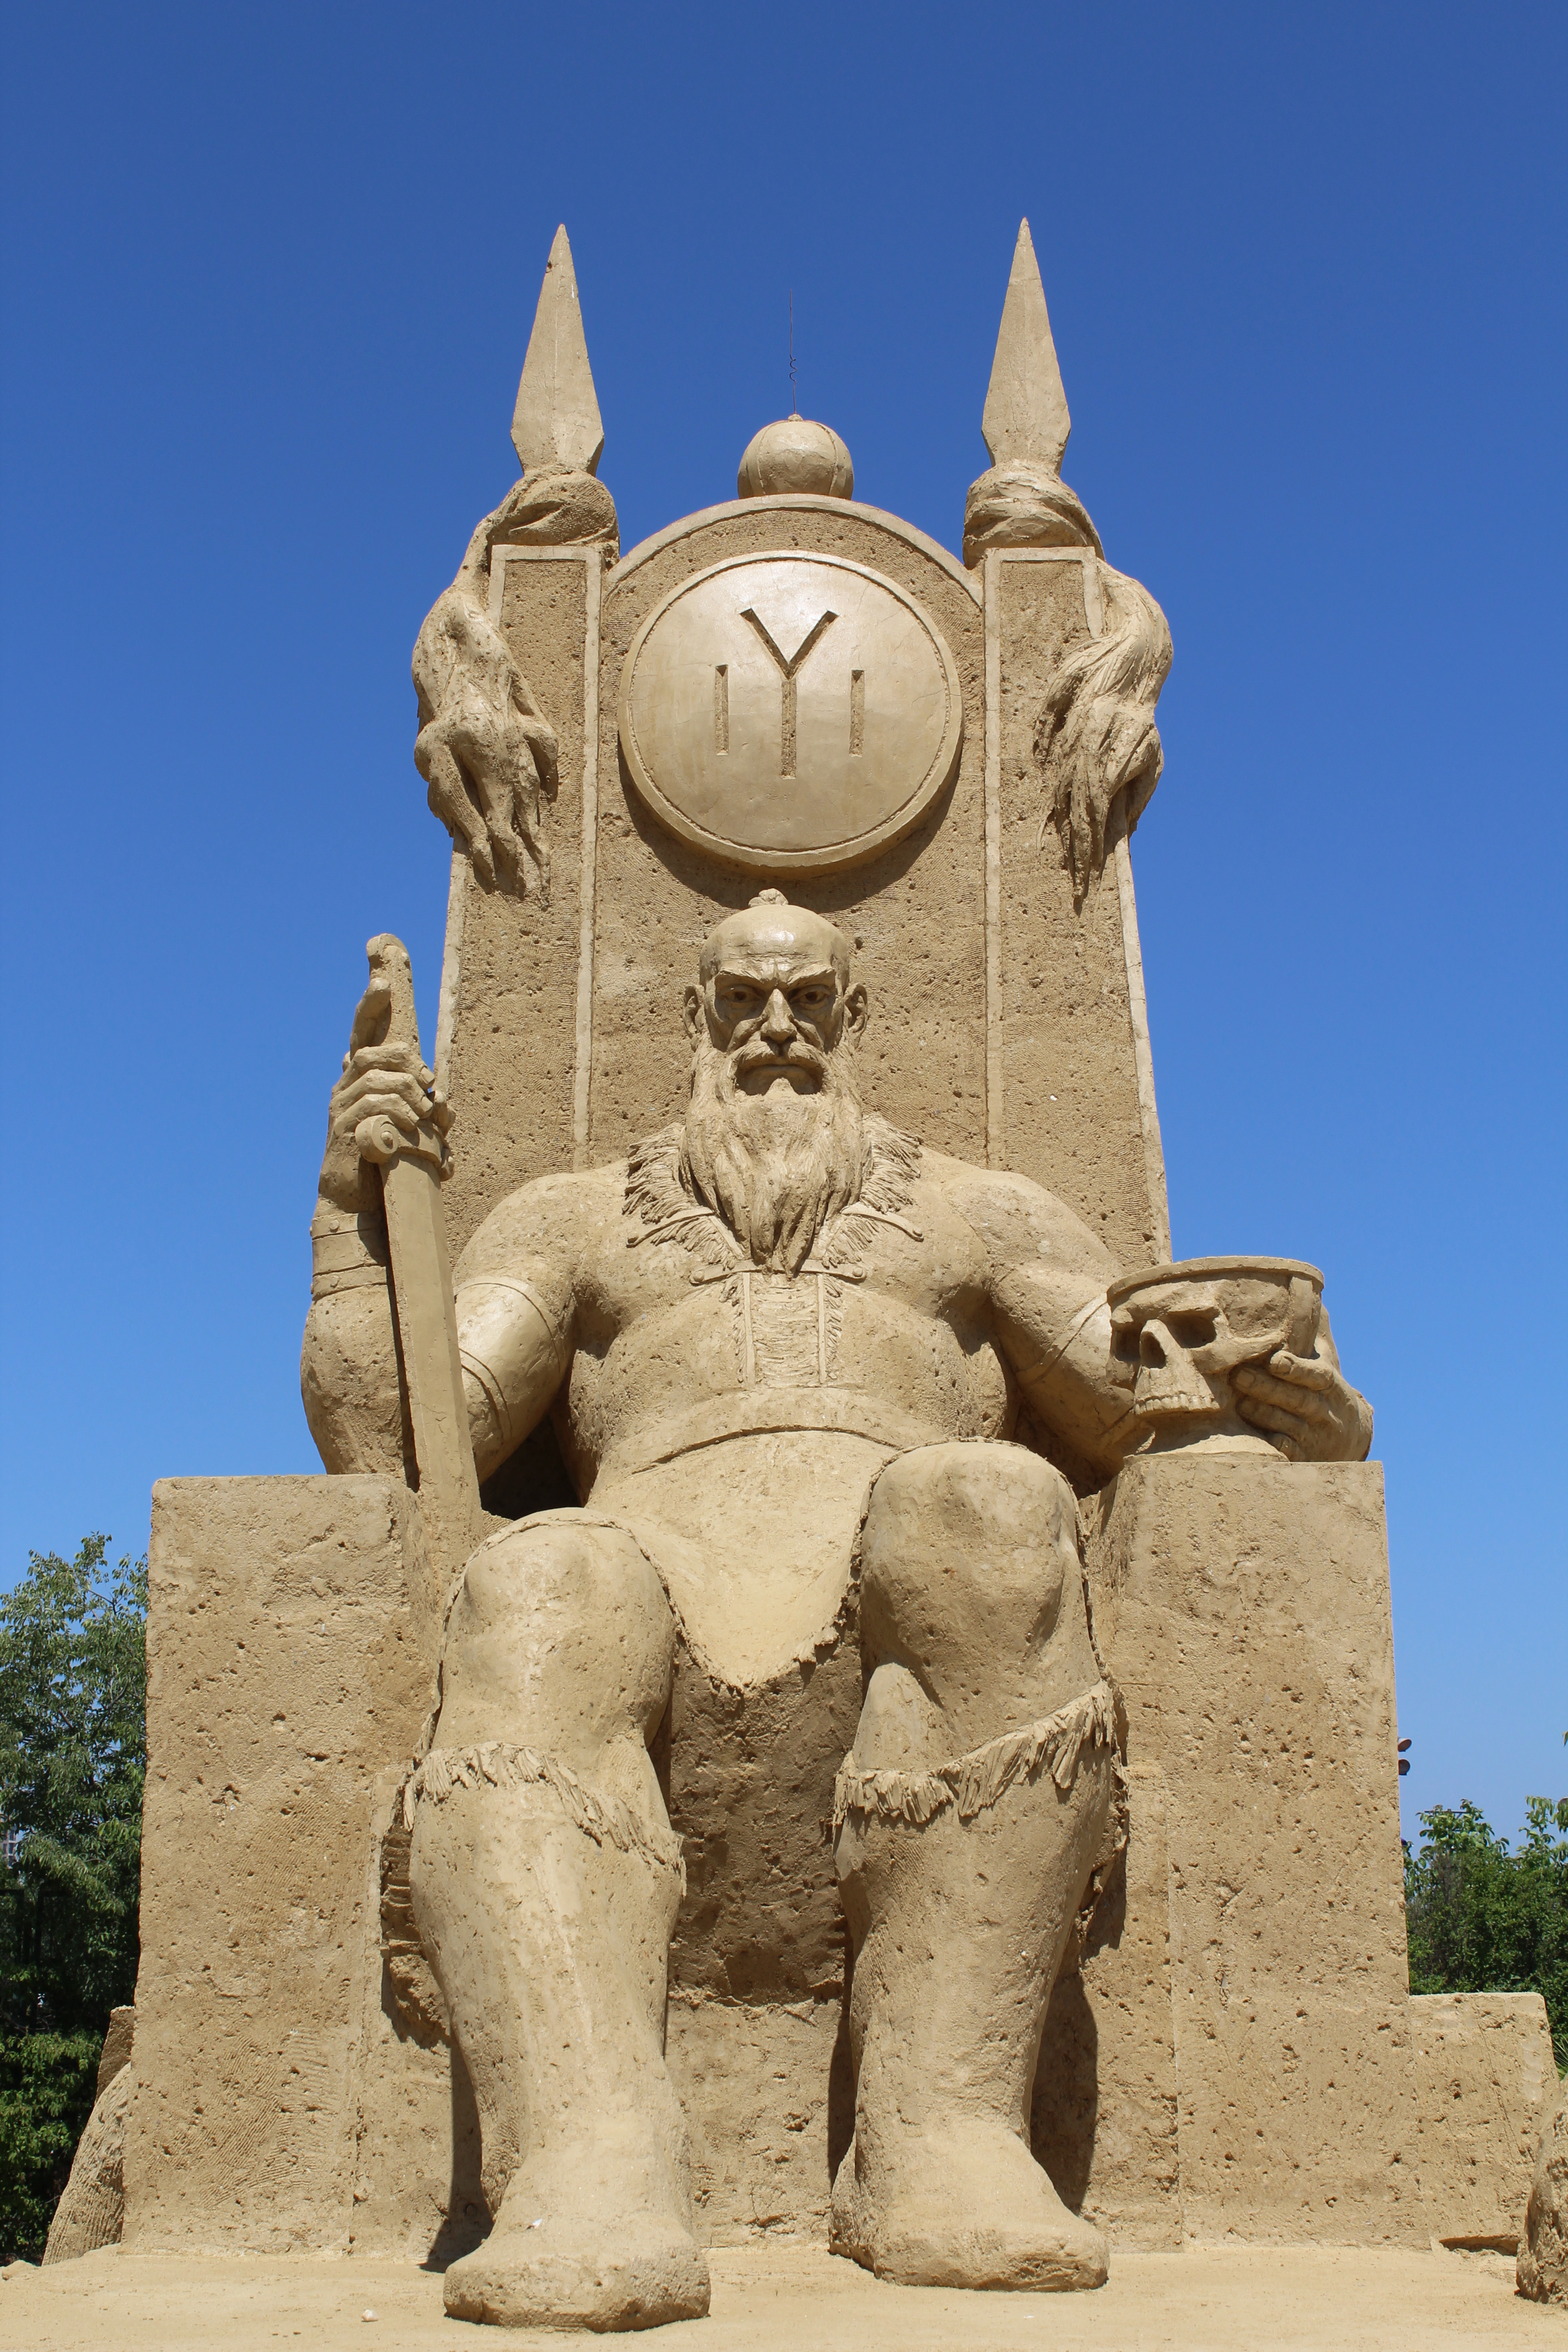 The 10th International sand sculptures festival